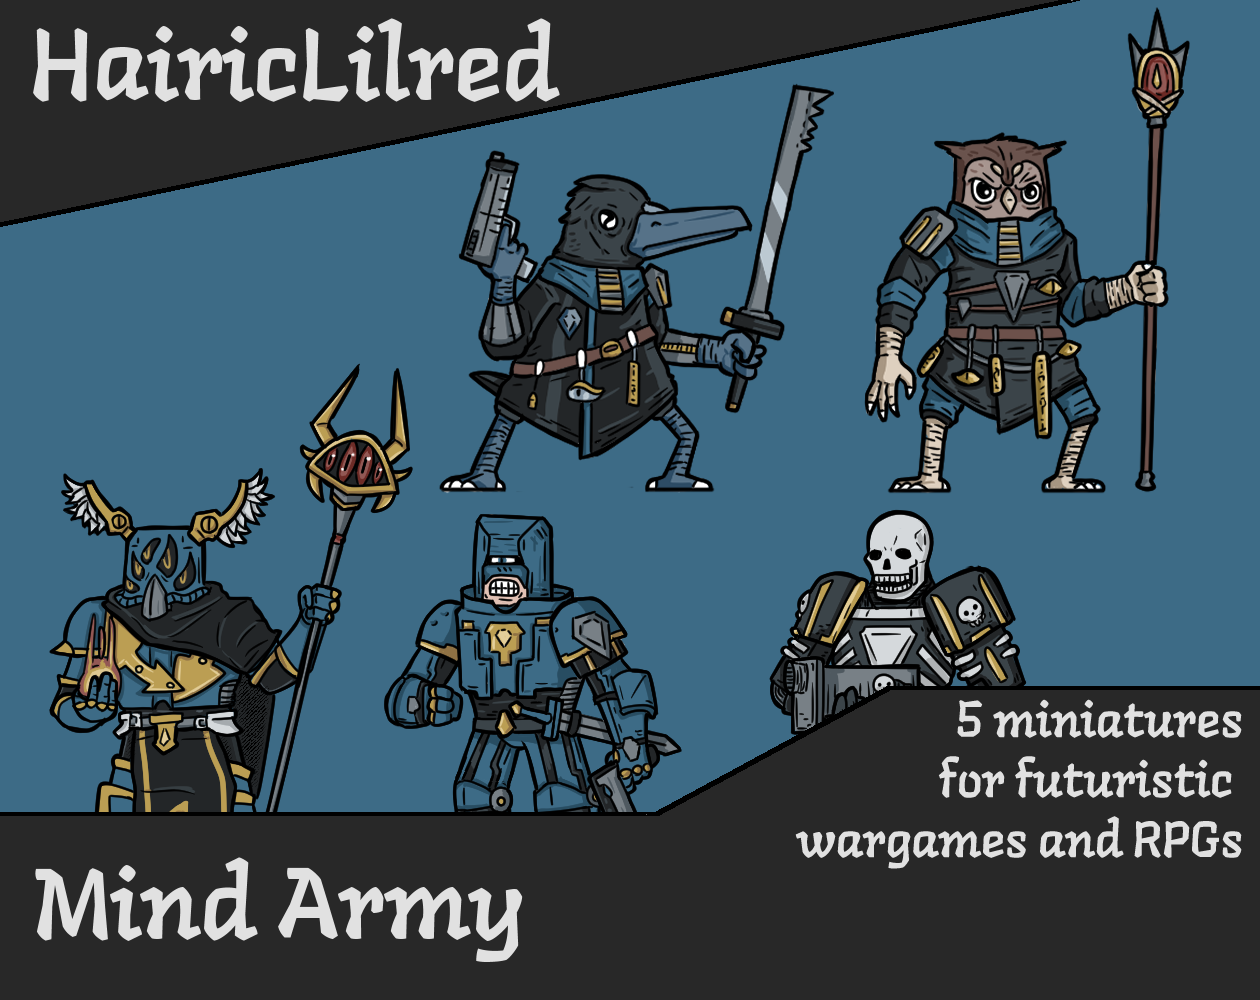 Hairic Wargame Miniature - Mind Army pack